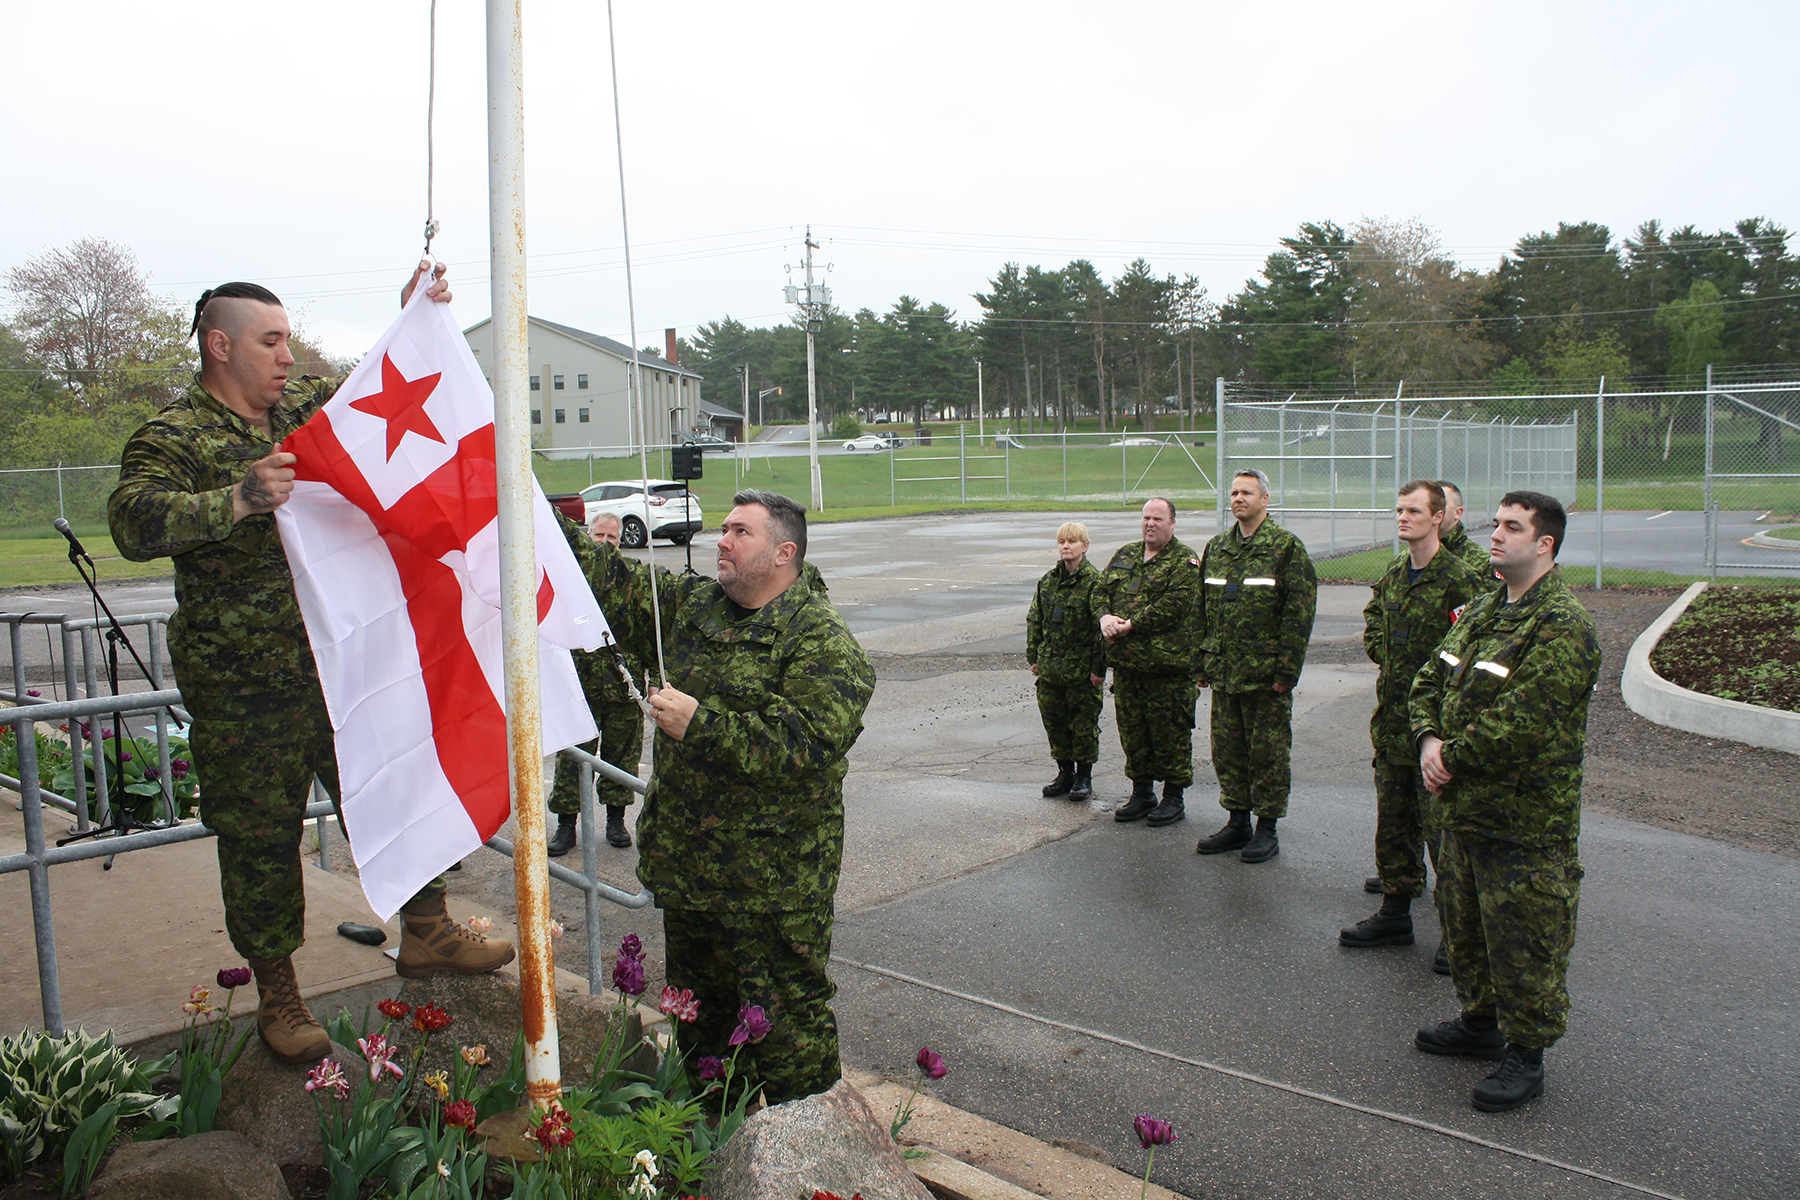 Two men wearing disruptive pattern uniforms prepare to raise a red and white flag; eight similarly-dressed people watch.